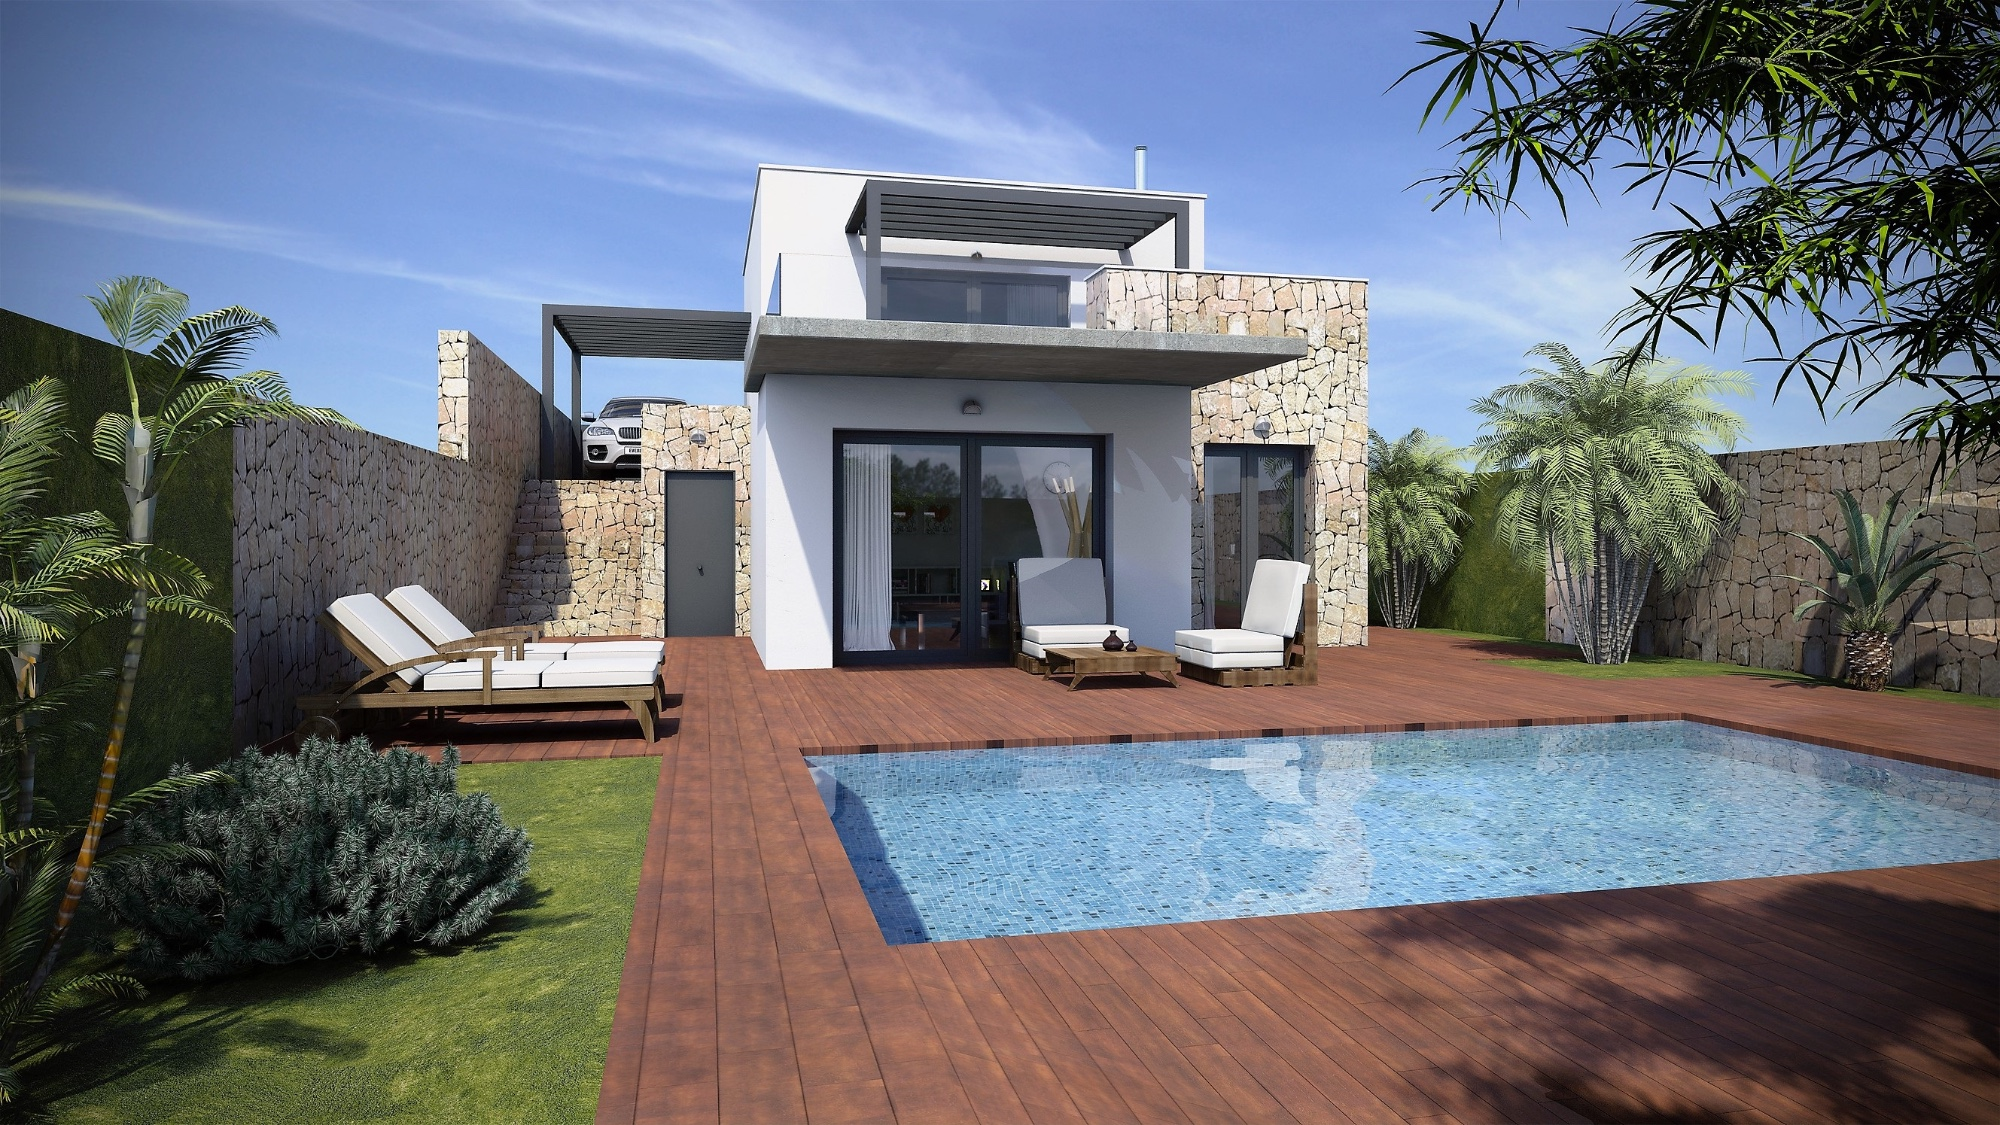 New build villas in the heart of Alcalali. There will be a small community of new villas,Spain